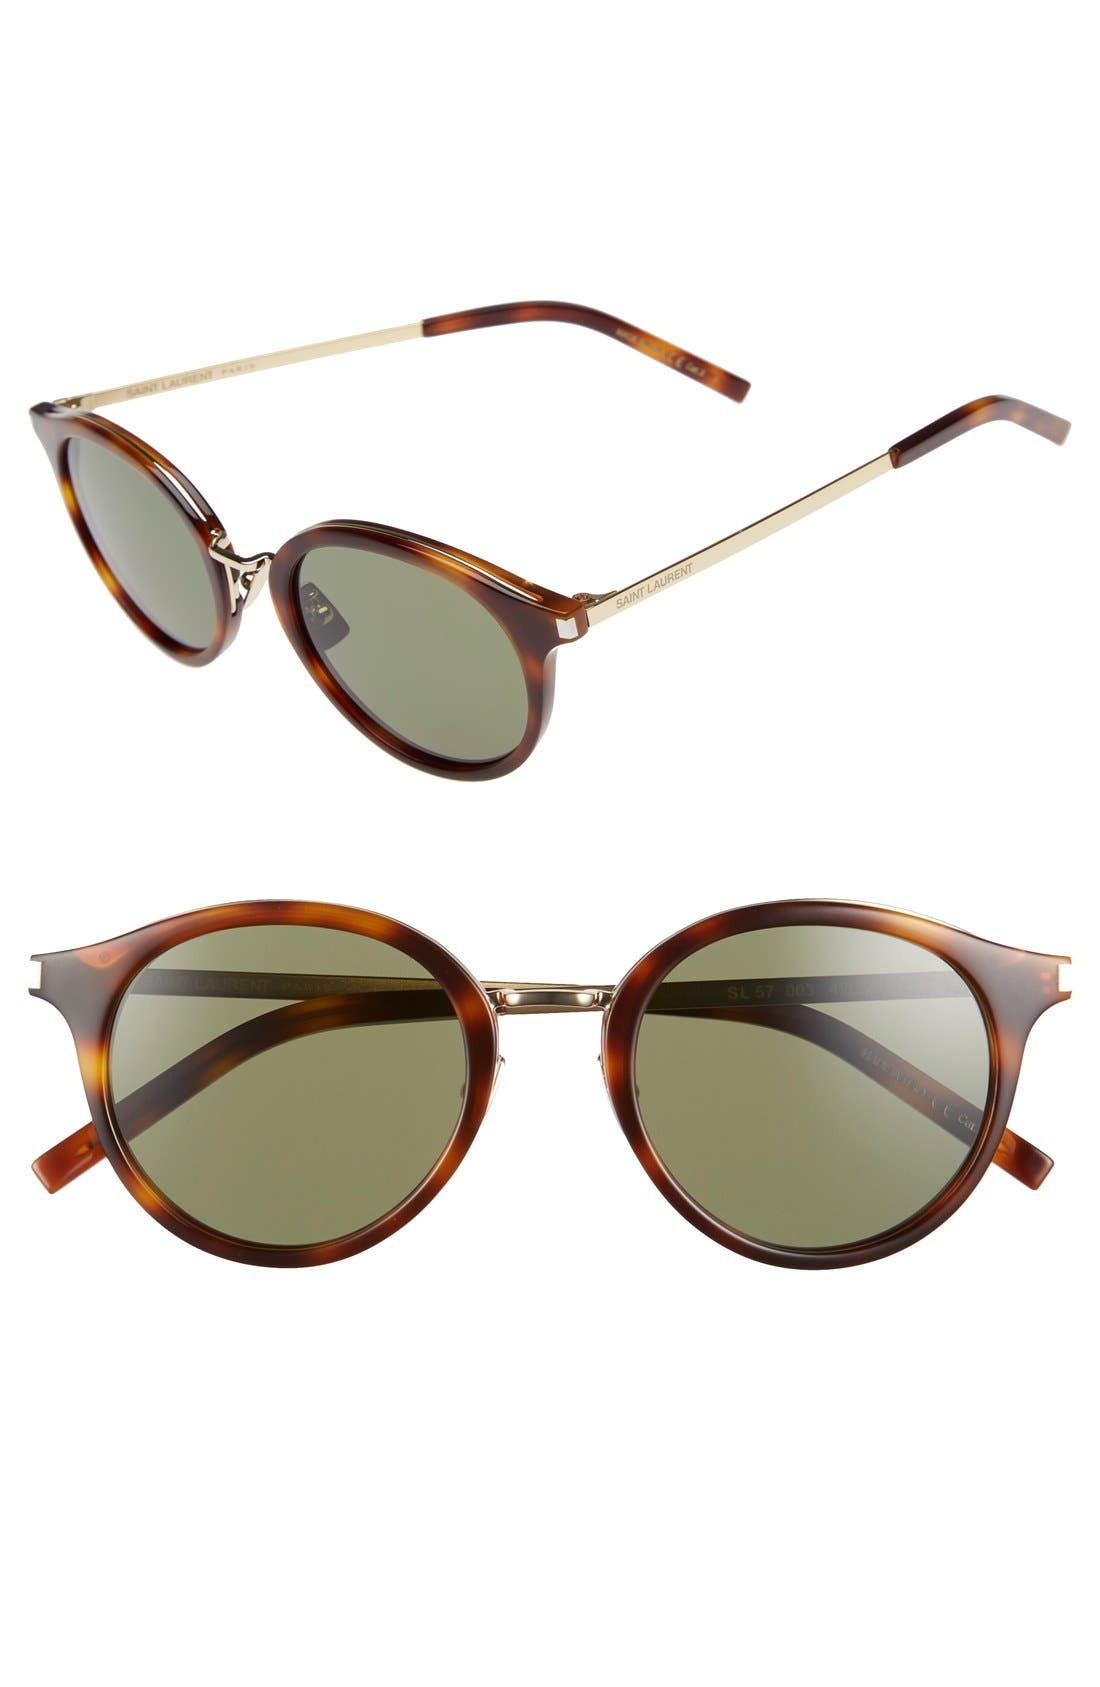 Alternate Image 1 Selected - Saint Laurent 49mm Round Sunglasses